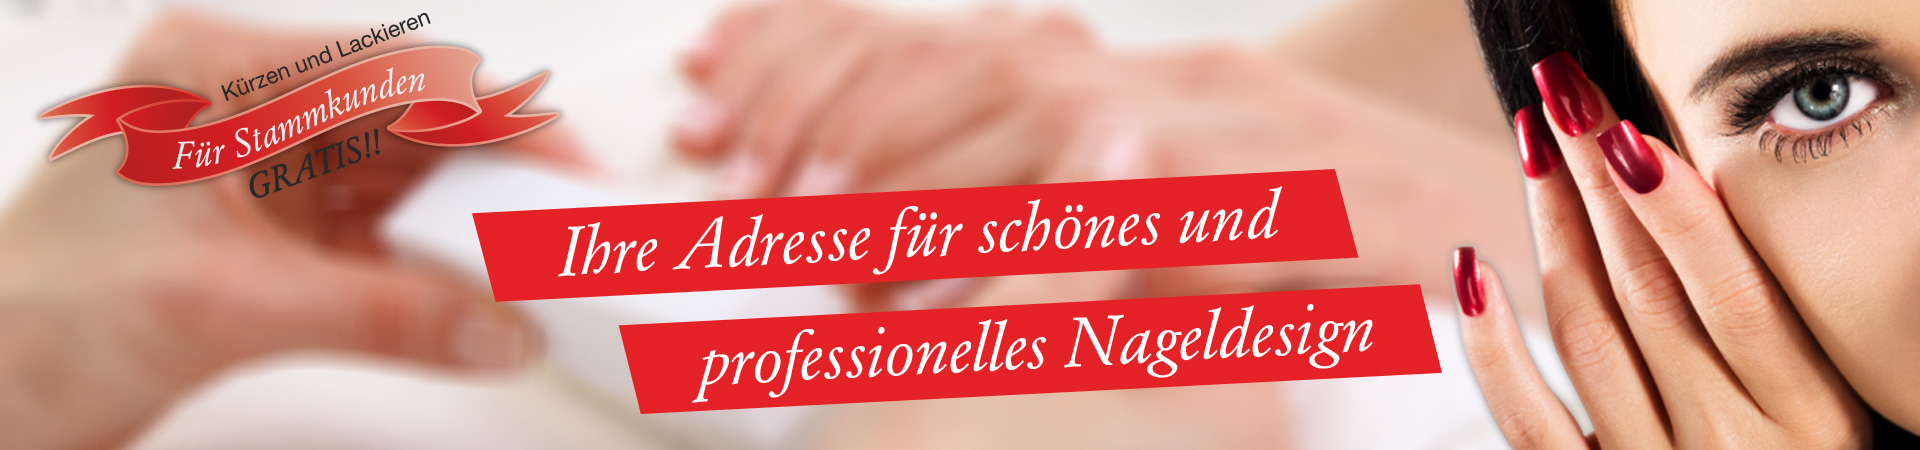 rednails-index-slide-1